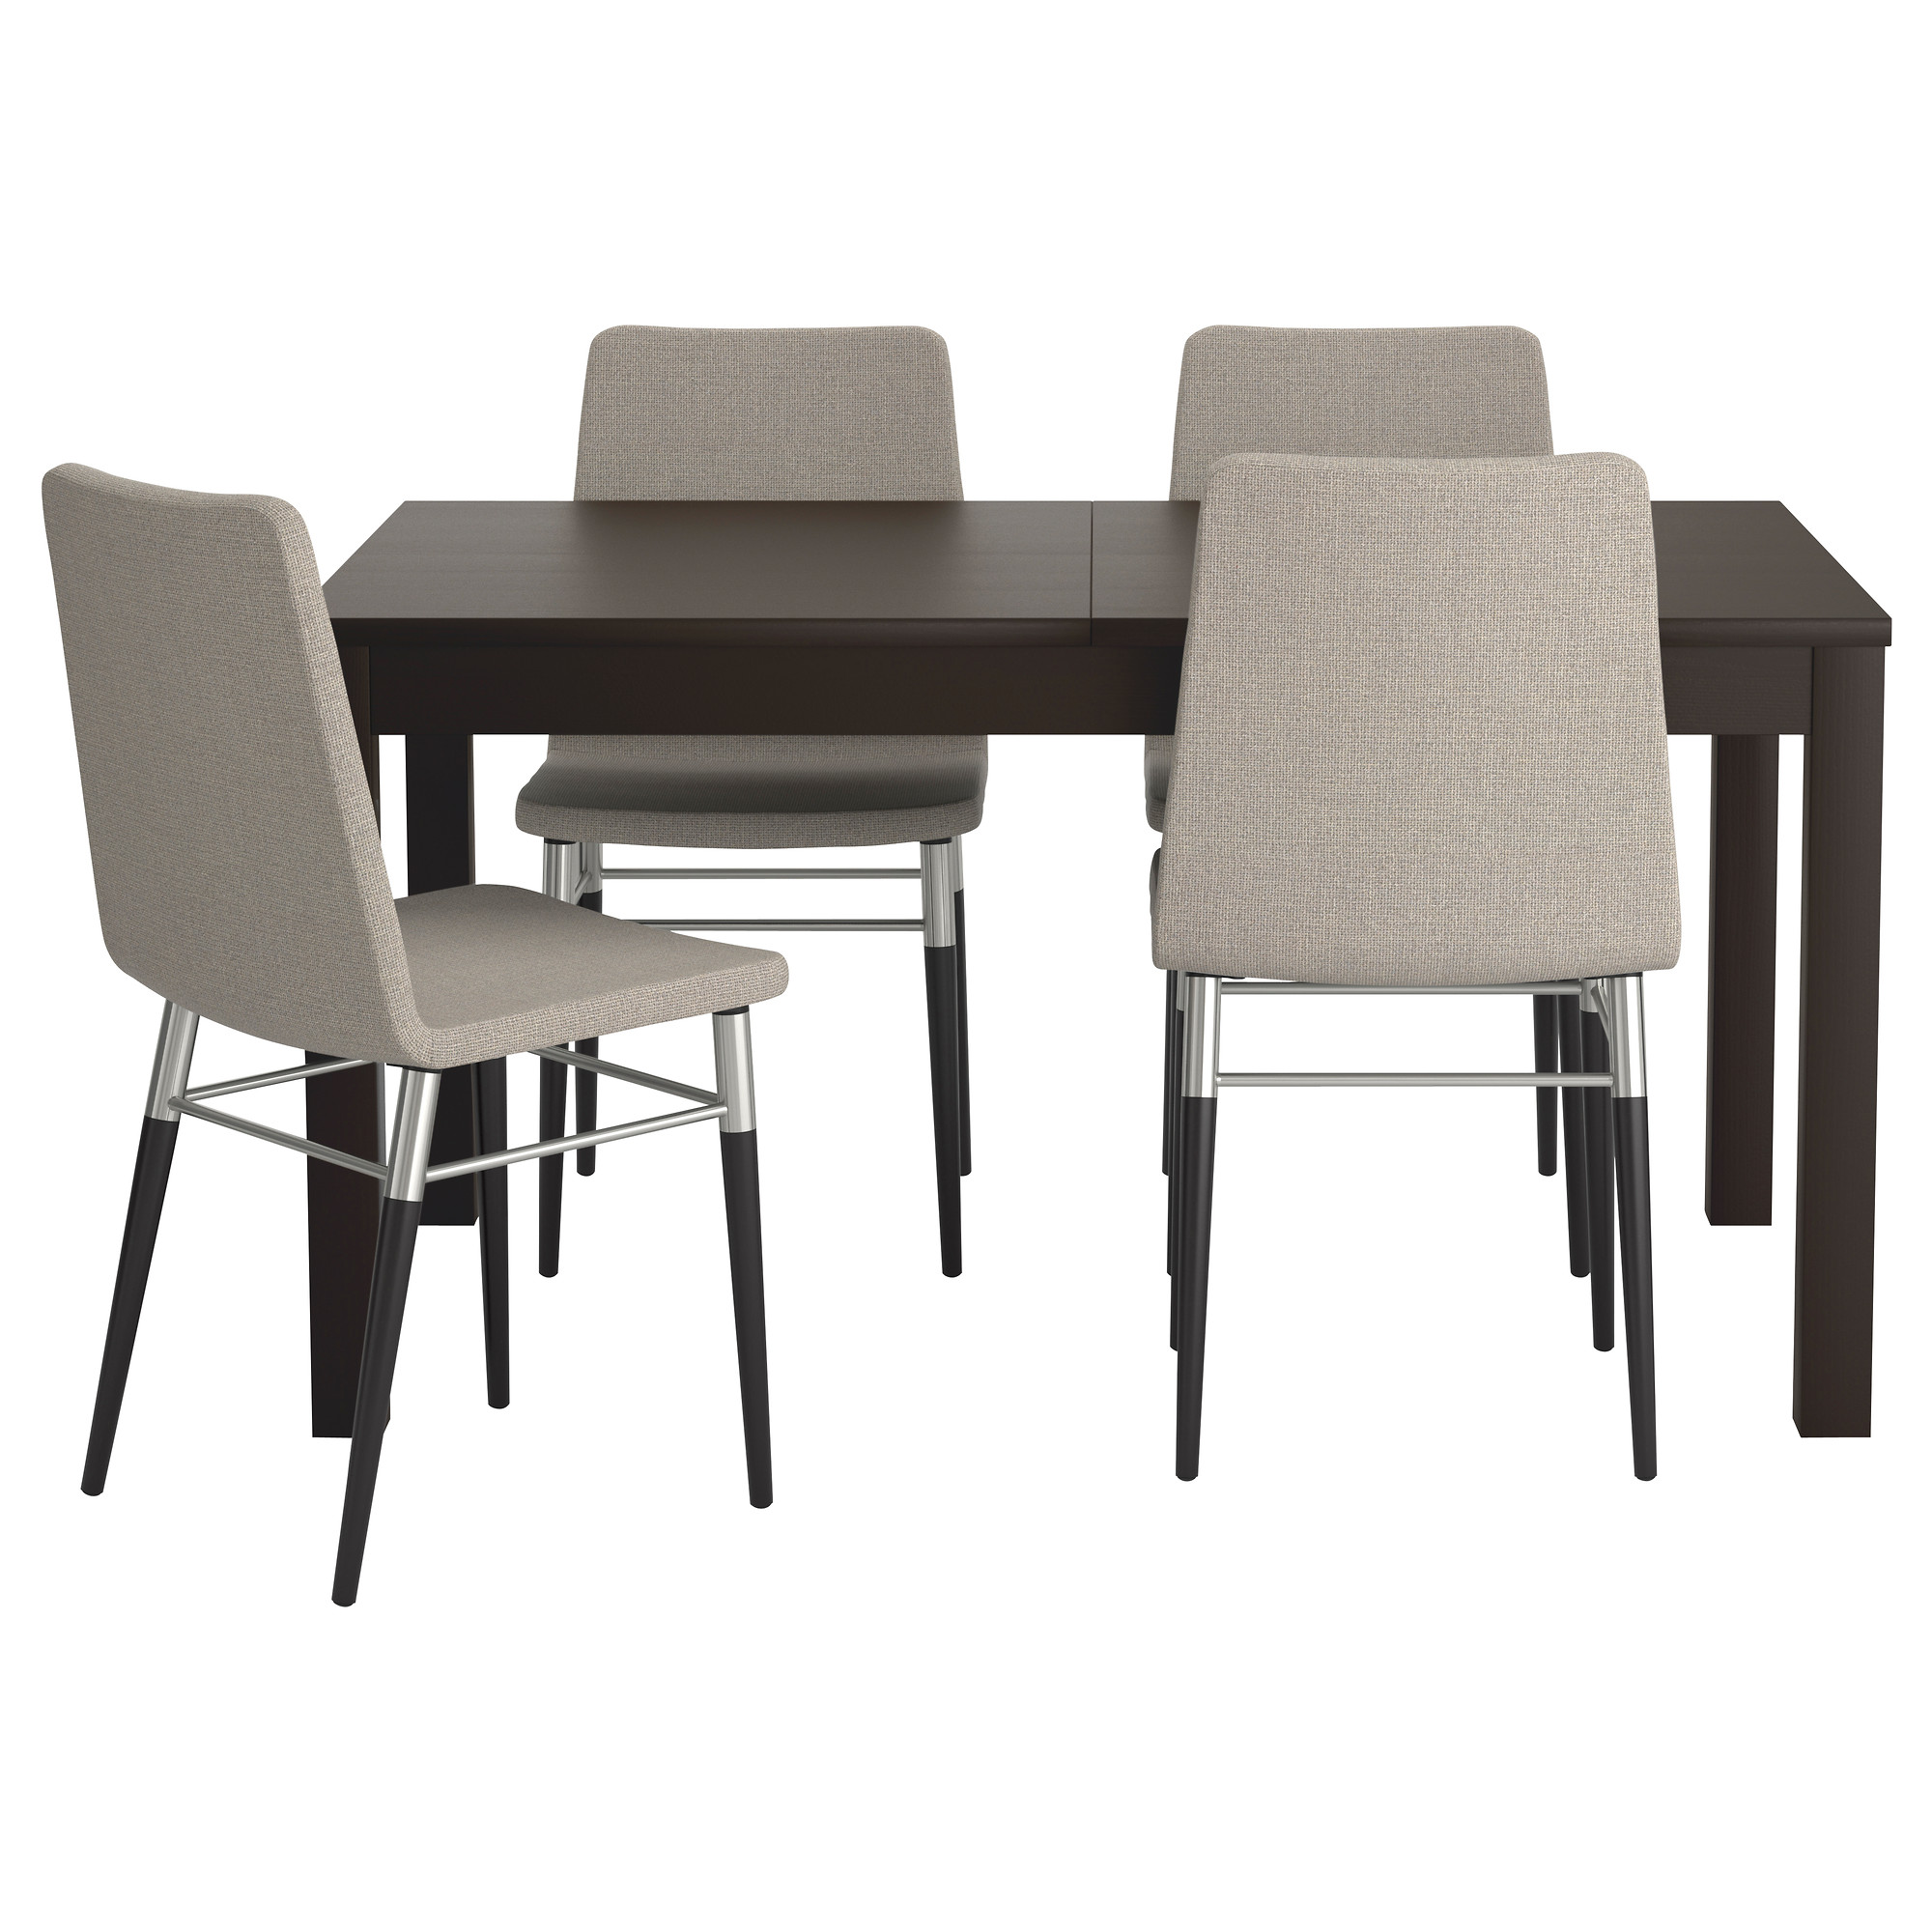 ikea dining room table reviews suitable with ikea dining room table legs